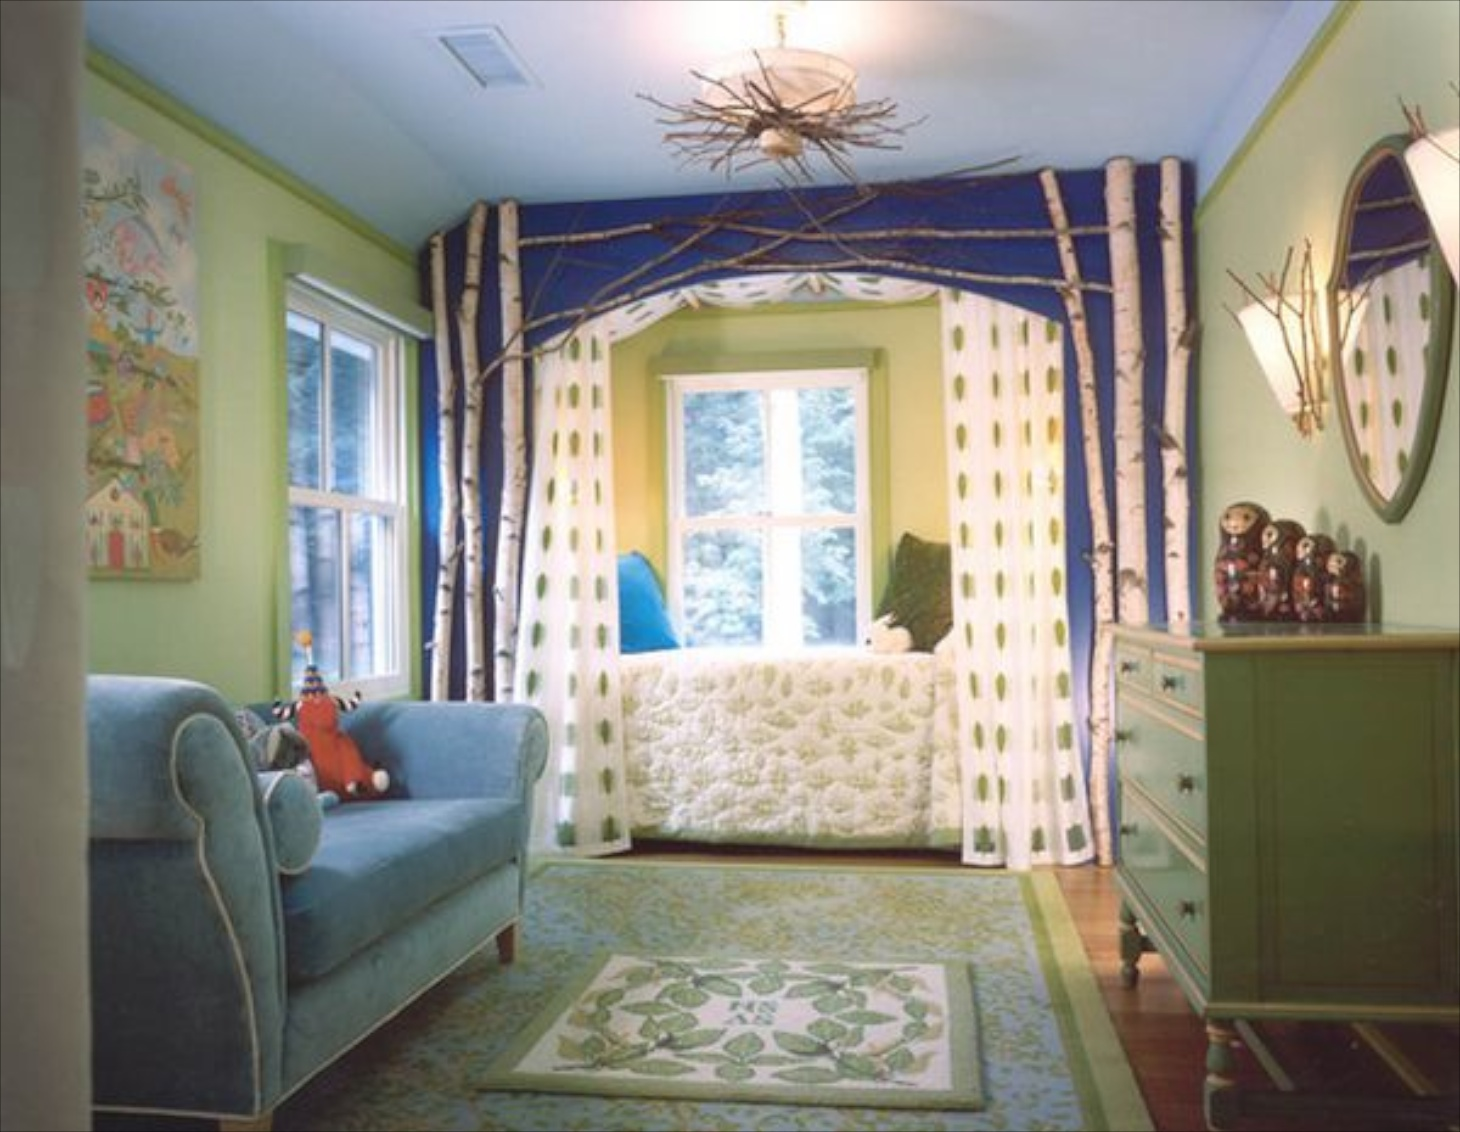 Extravagant tree branches - Photos of girls bedroom ...